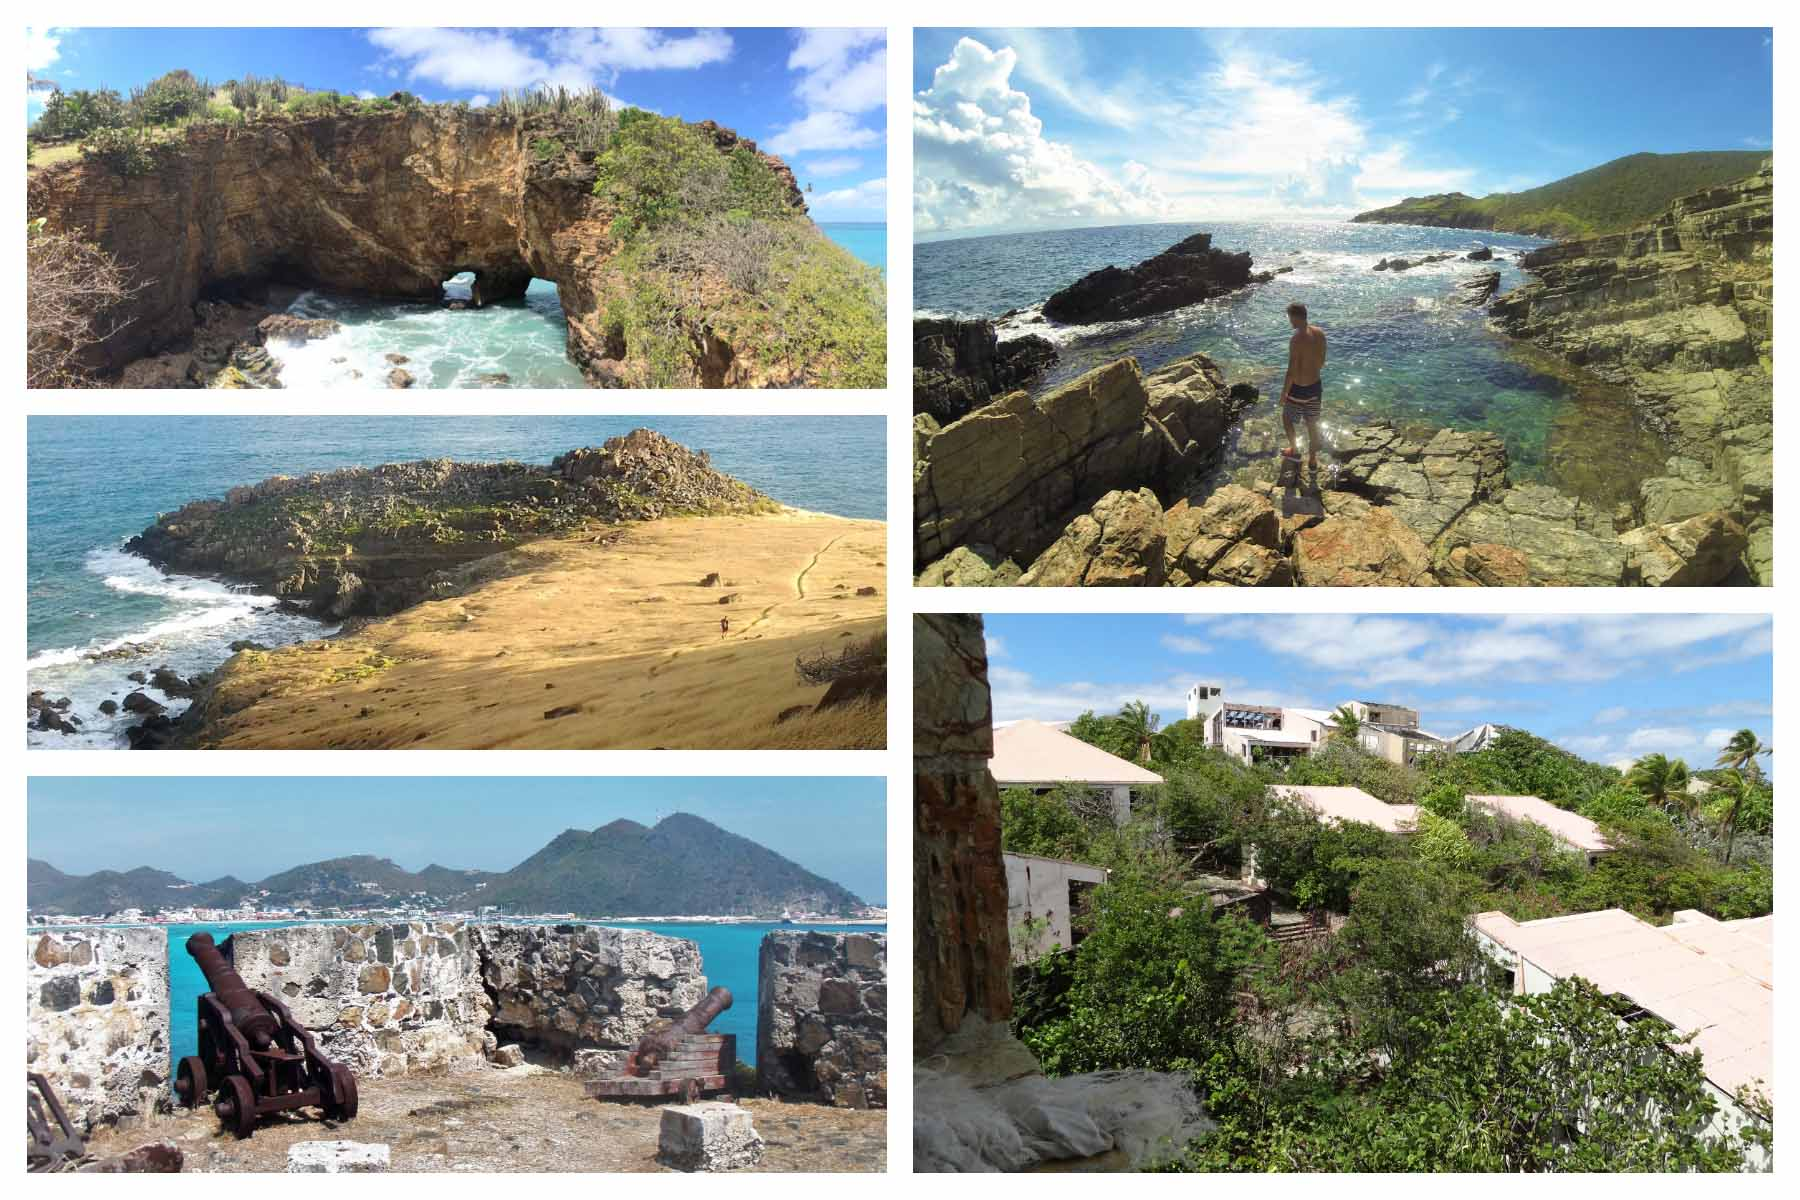 Hard to find places St Maarten-St Martin: La Belle Creole, Natural Pool, Wildernis, David's Hole, Fort Amsterdam, Fort Louis, Lovers Beach, Pic Paradis, Pinel Island.